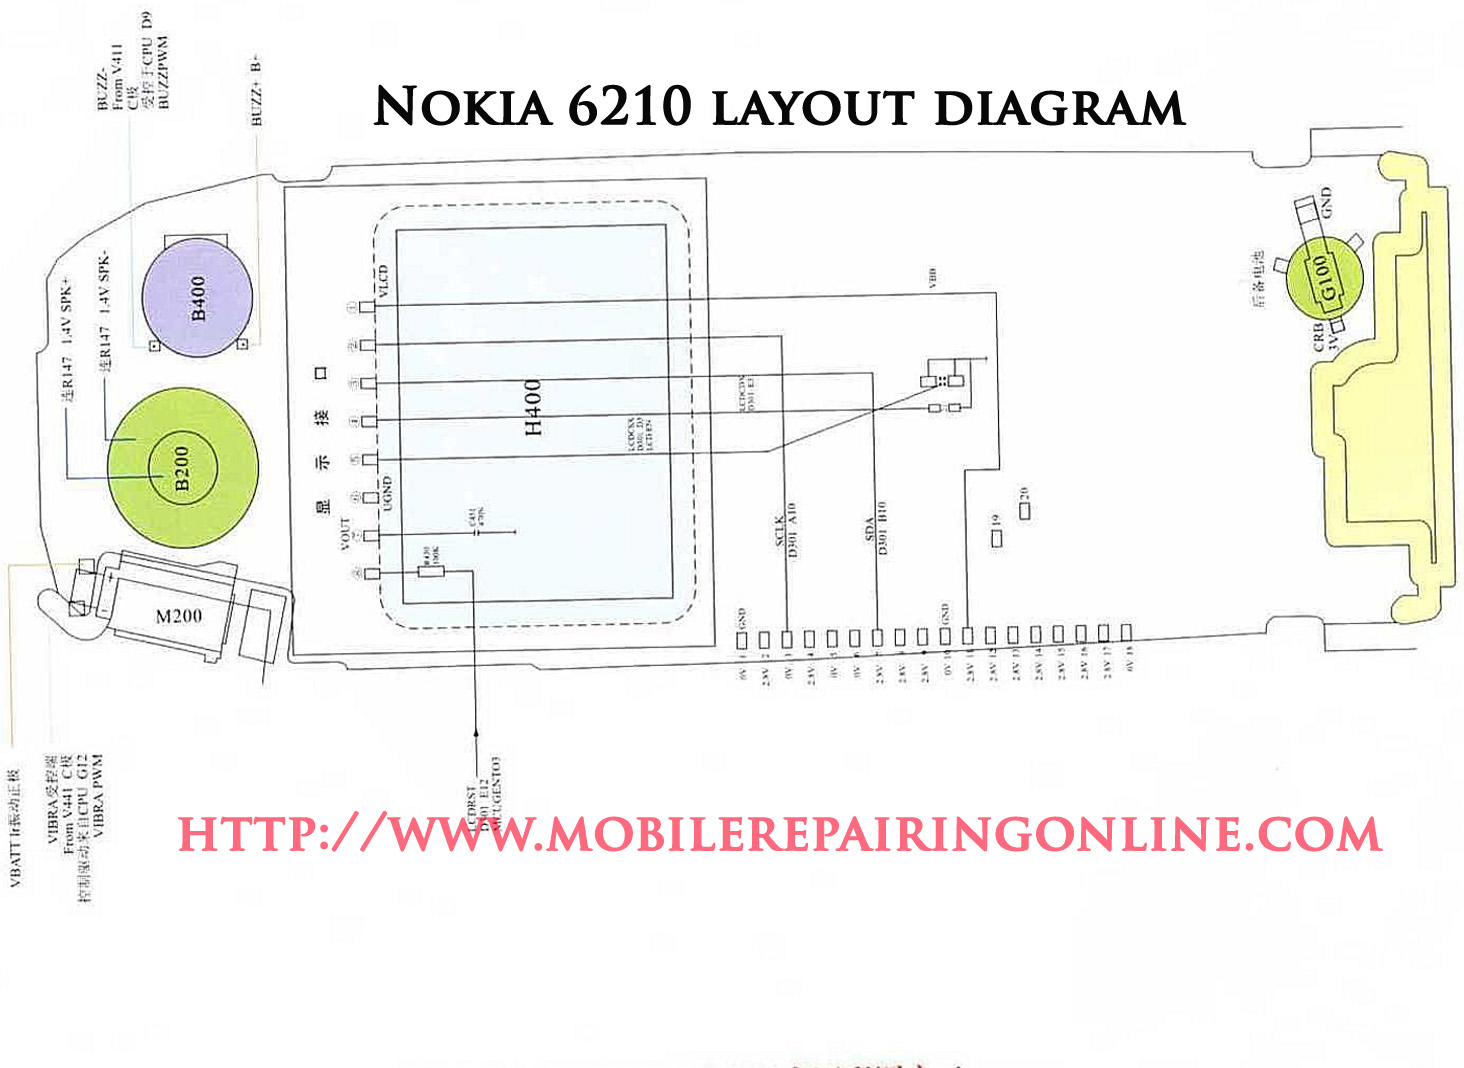 schematic diagram for nokia mobile phones mobilerepairingonline rh mobilerepairingonline com nokia 1200 circuit diagram pdf nokia 1280 circuit diagram pdf